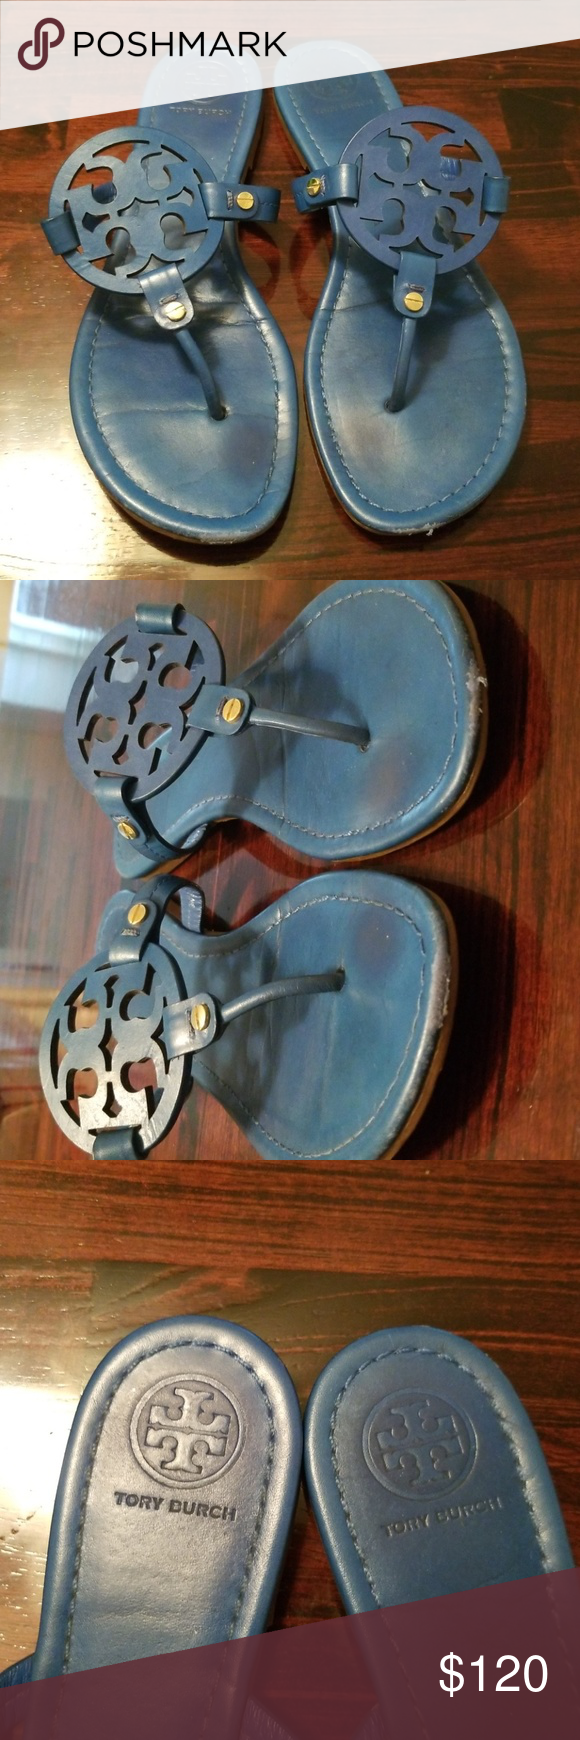 2f05addda61b0c Tory Burch Blue Leather Miller Sandals Size 9.5 Great condition